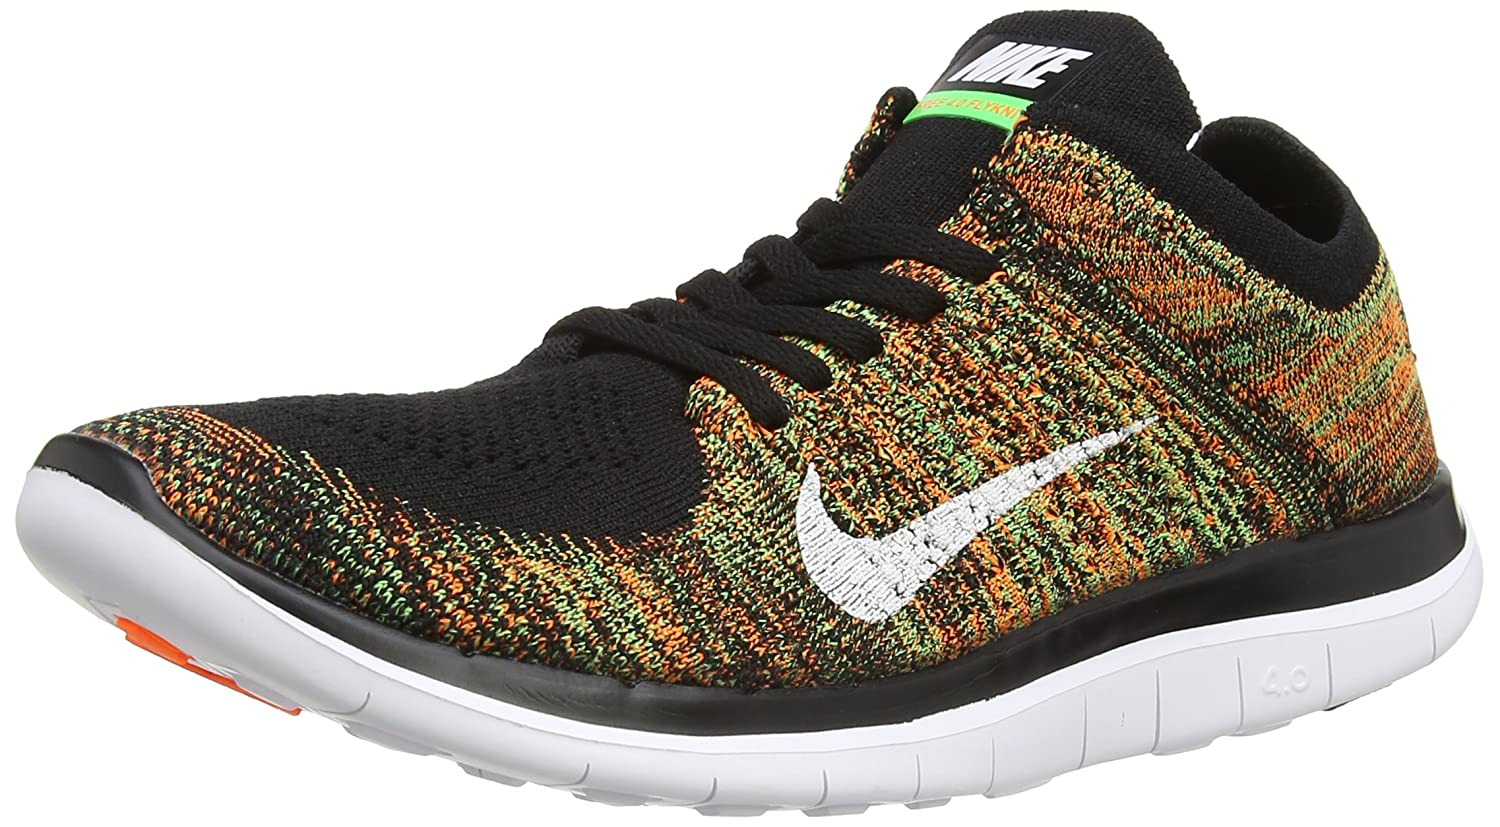 Tidsmæssigt Amazon.com | Nike Mens Free 4.0 Flyknit Black/White/Psn Green/Ttl YY-47